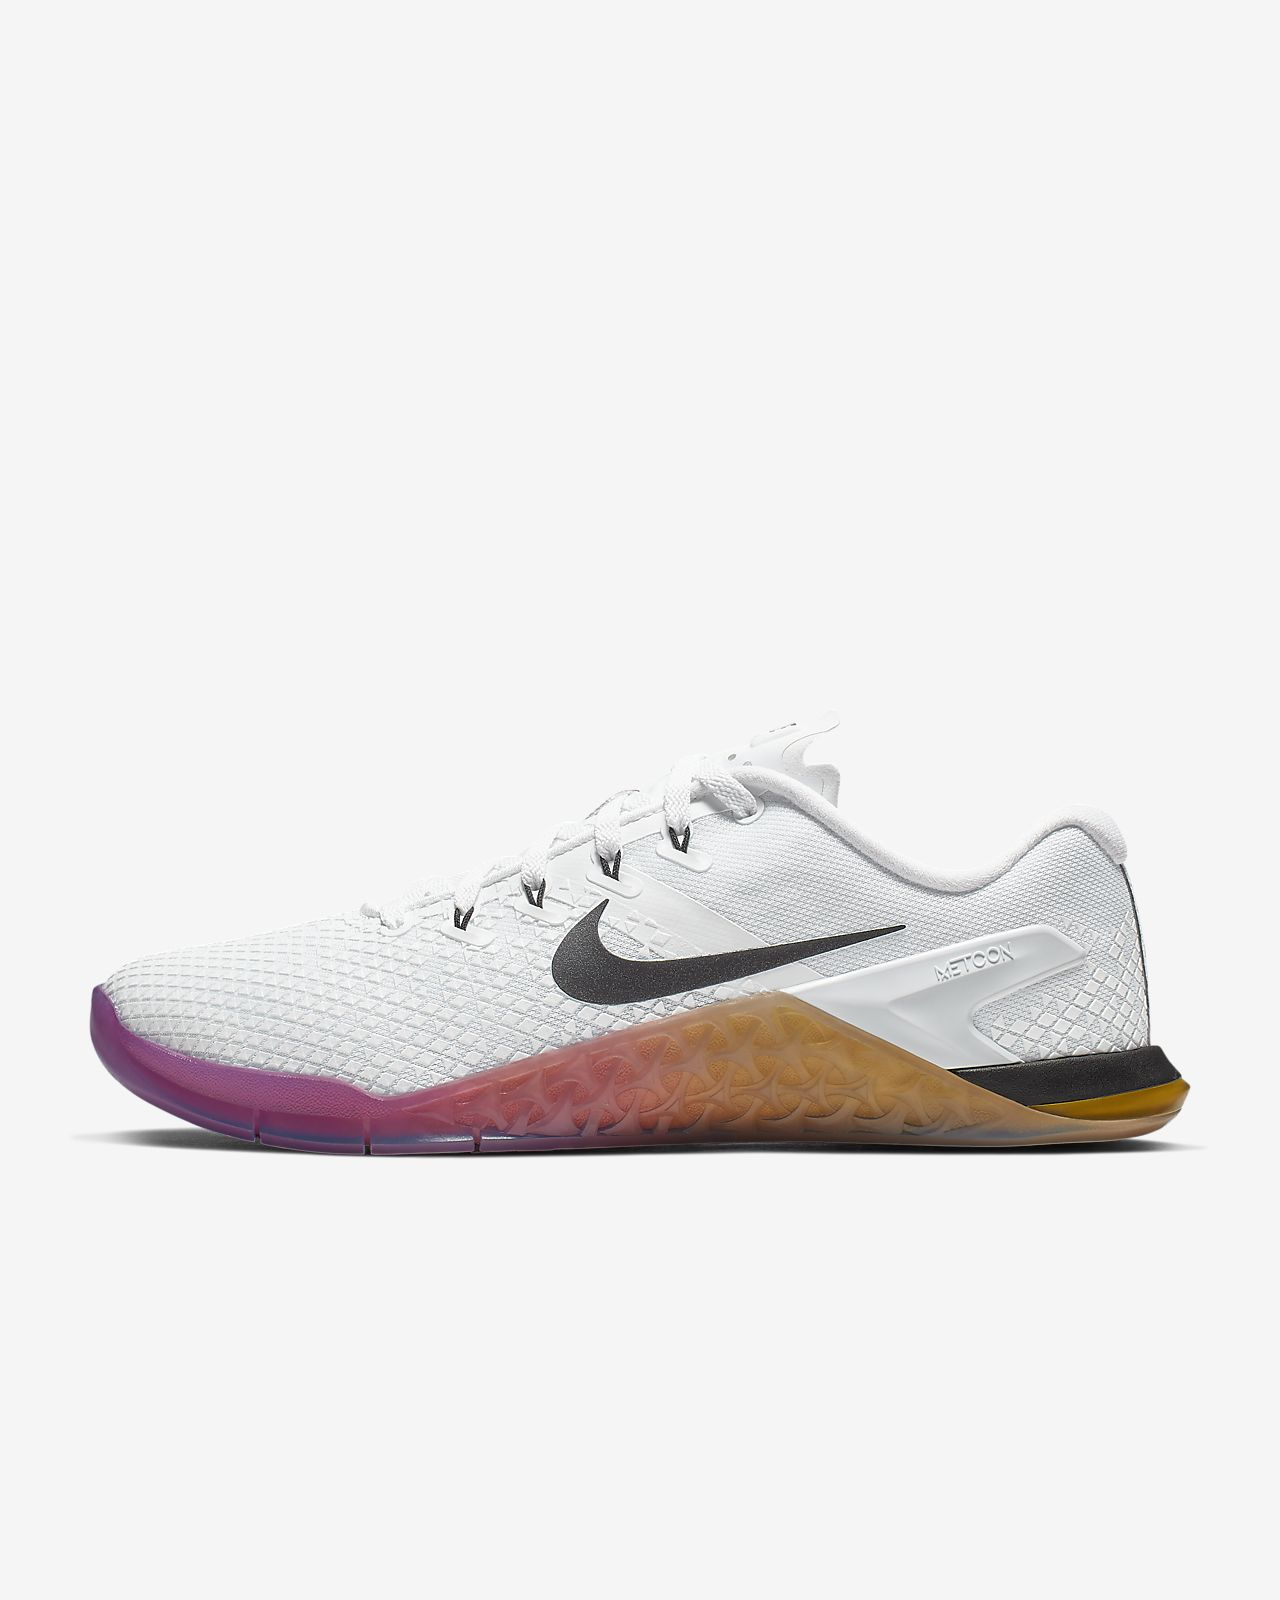 d457b87d3 Nike Metcon 4 XD Women's Cross-Training/Weightlifting Shoe. Nike.com PT